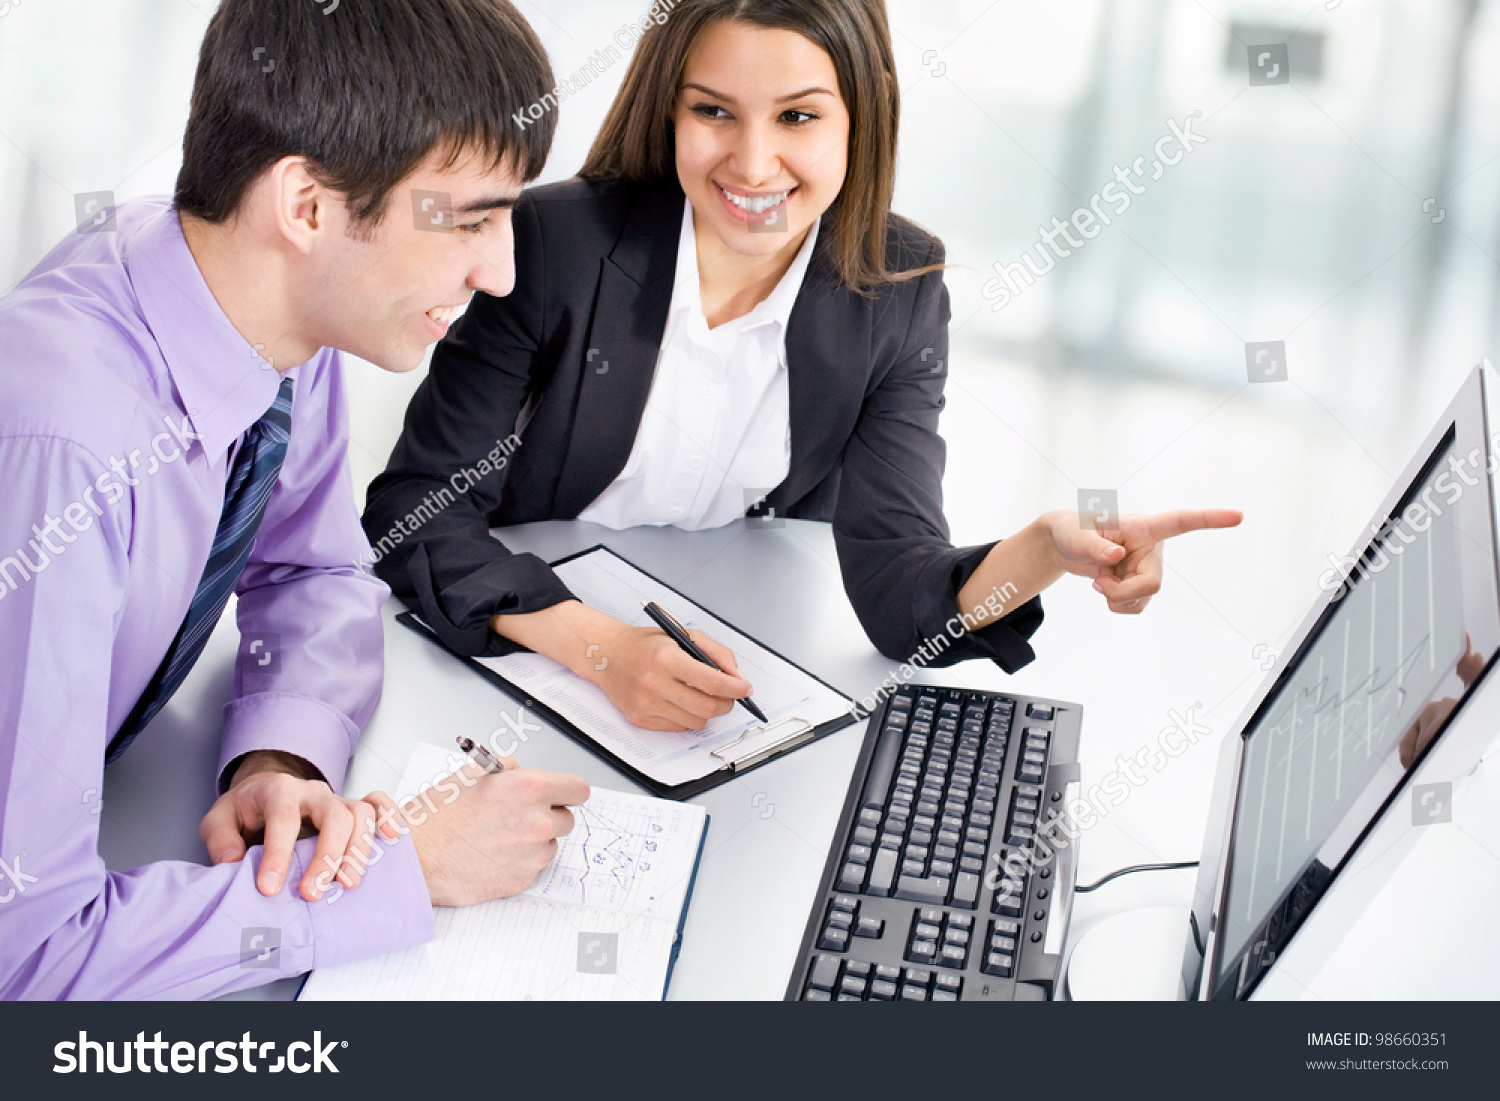 Young Business People Working Computer Stock Photo ...